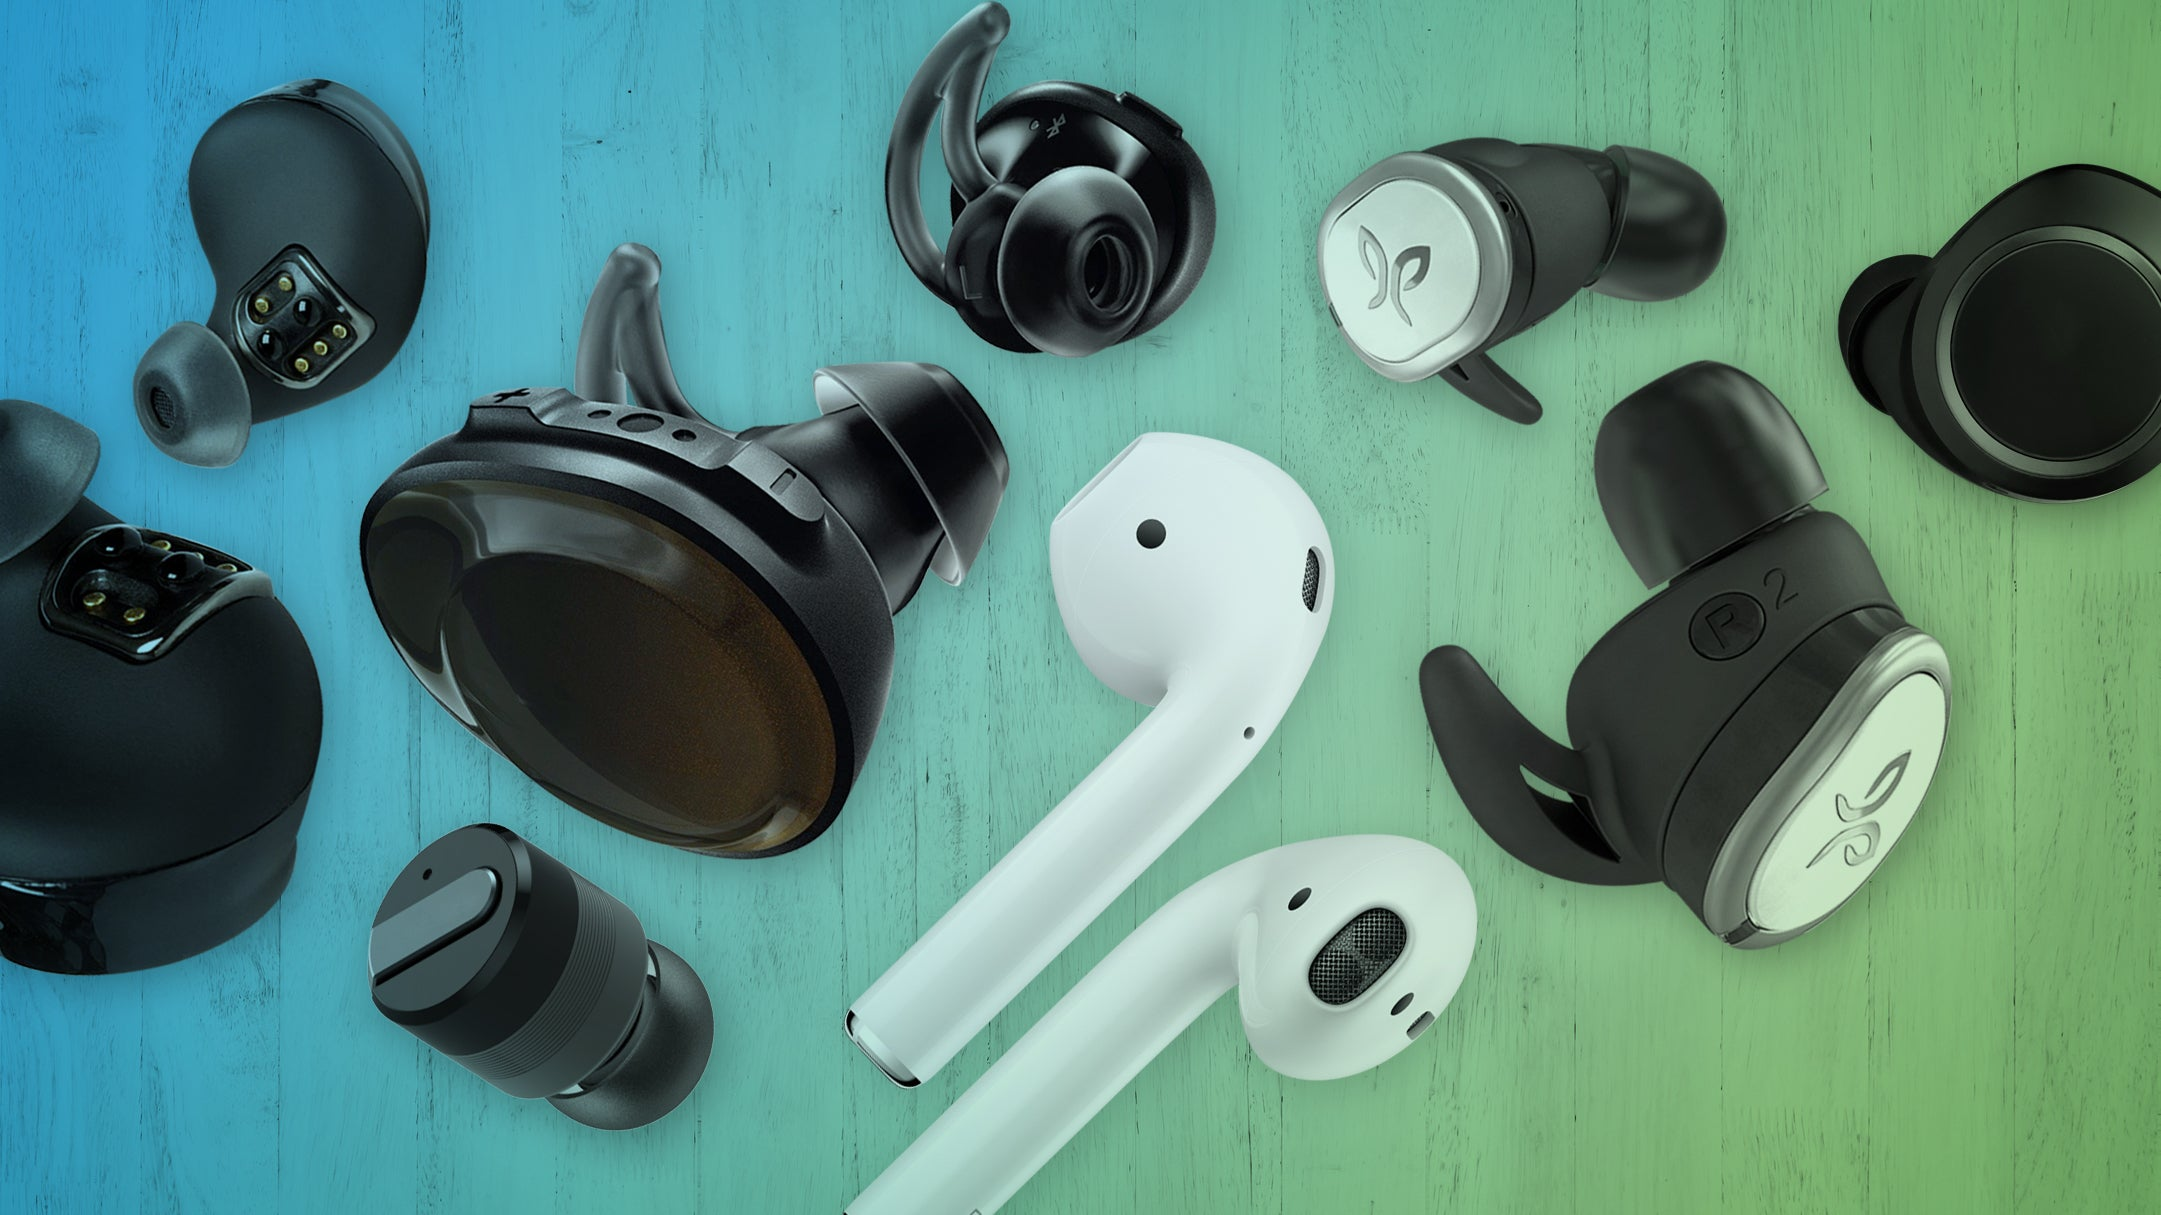 Best True Wireless Earbuds 2019 Under 100 Best true wireless earbuds 2019: Top picks, expert reviews | Macworld